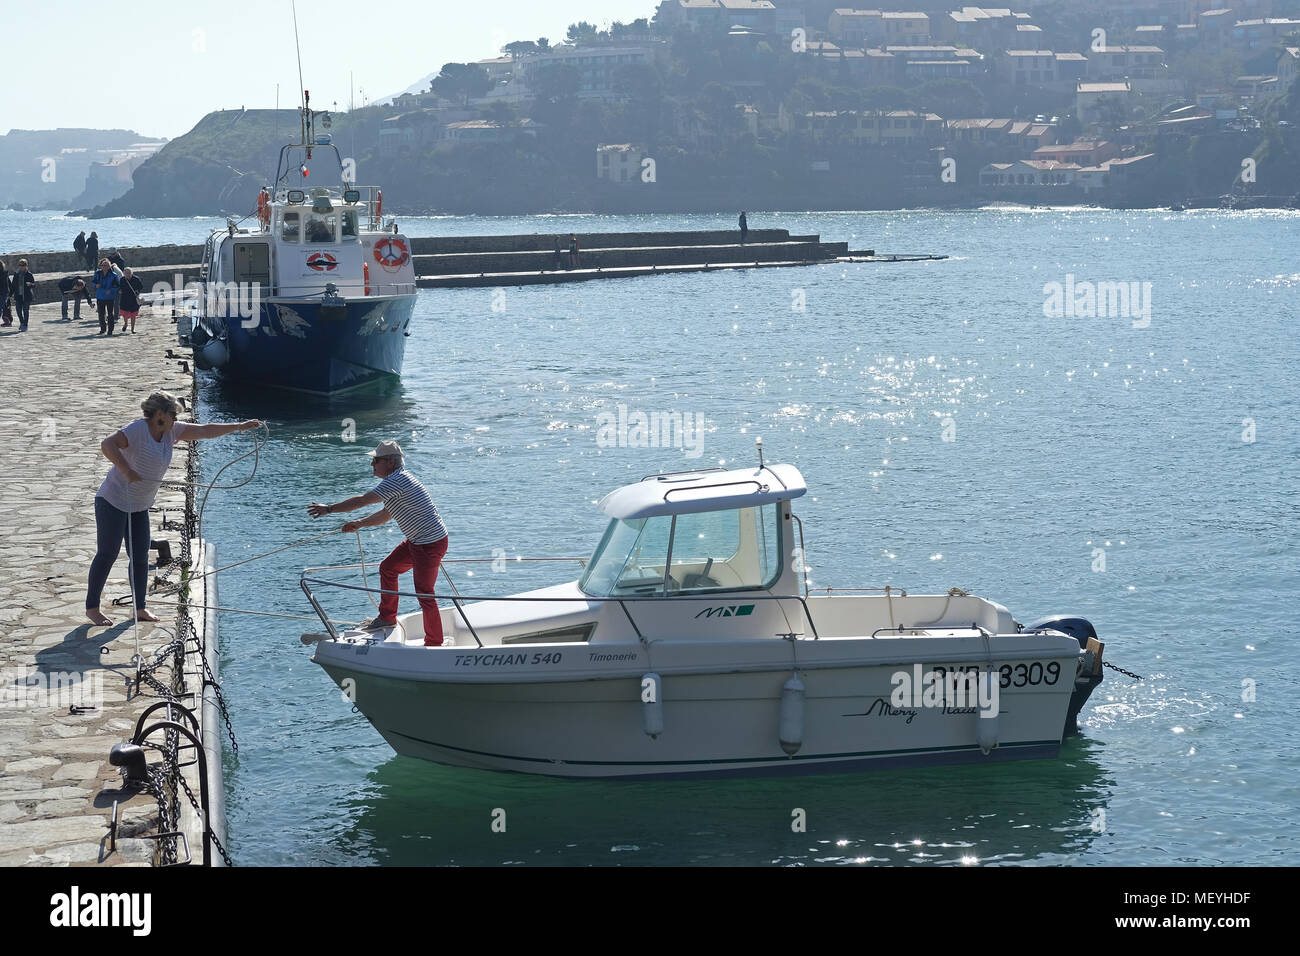 Holidaymakers casting off from the quay at Collioure, France - Stock Image